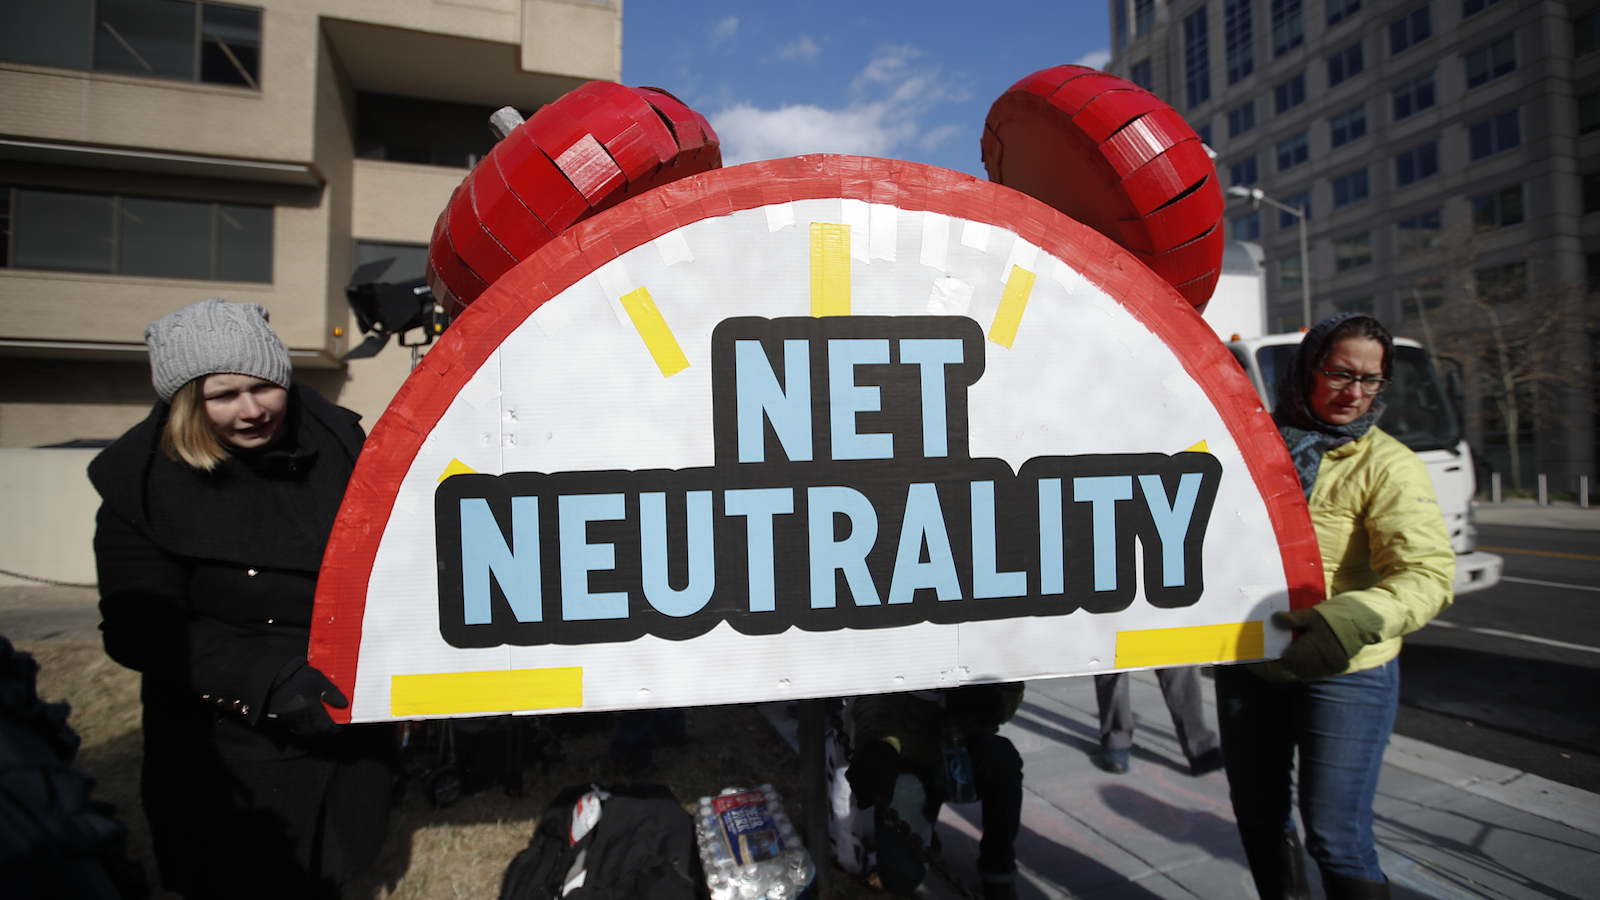 As Net Neutrality Ends, Activists Push Congress to Restore Obama-Era Rules